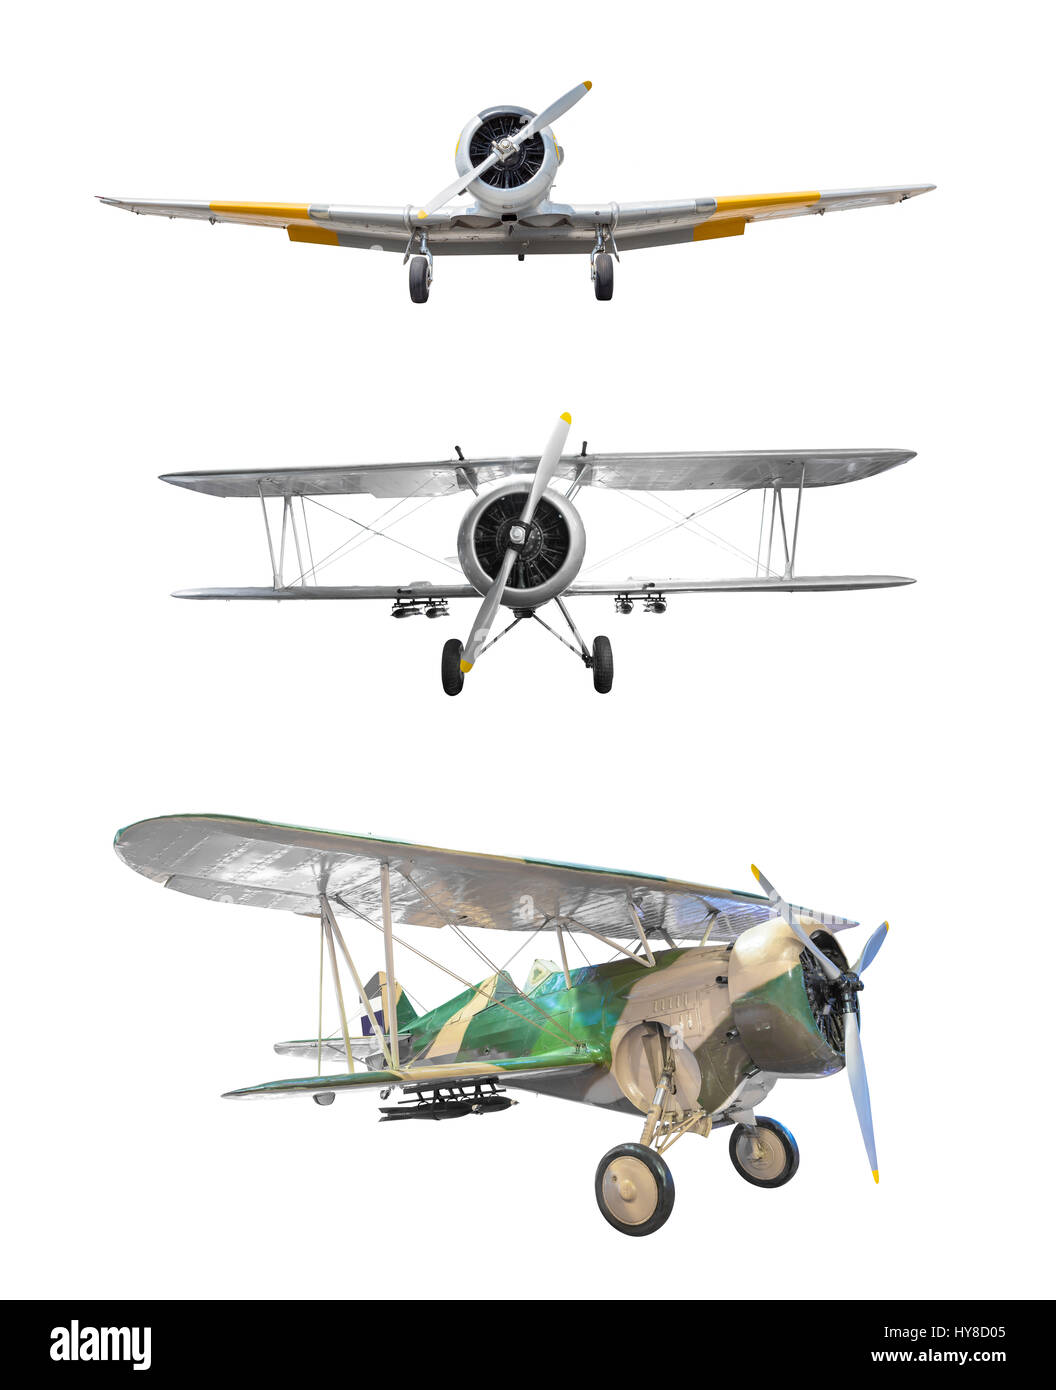 Old fighter plane collection isolated on white background - Stock Image